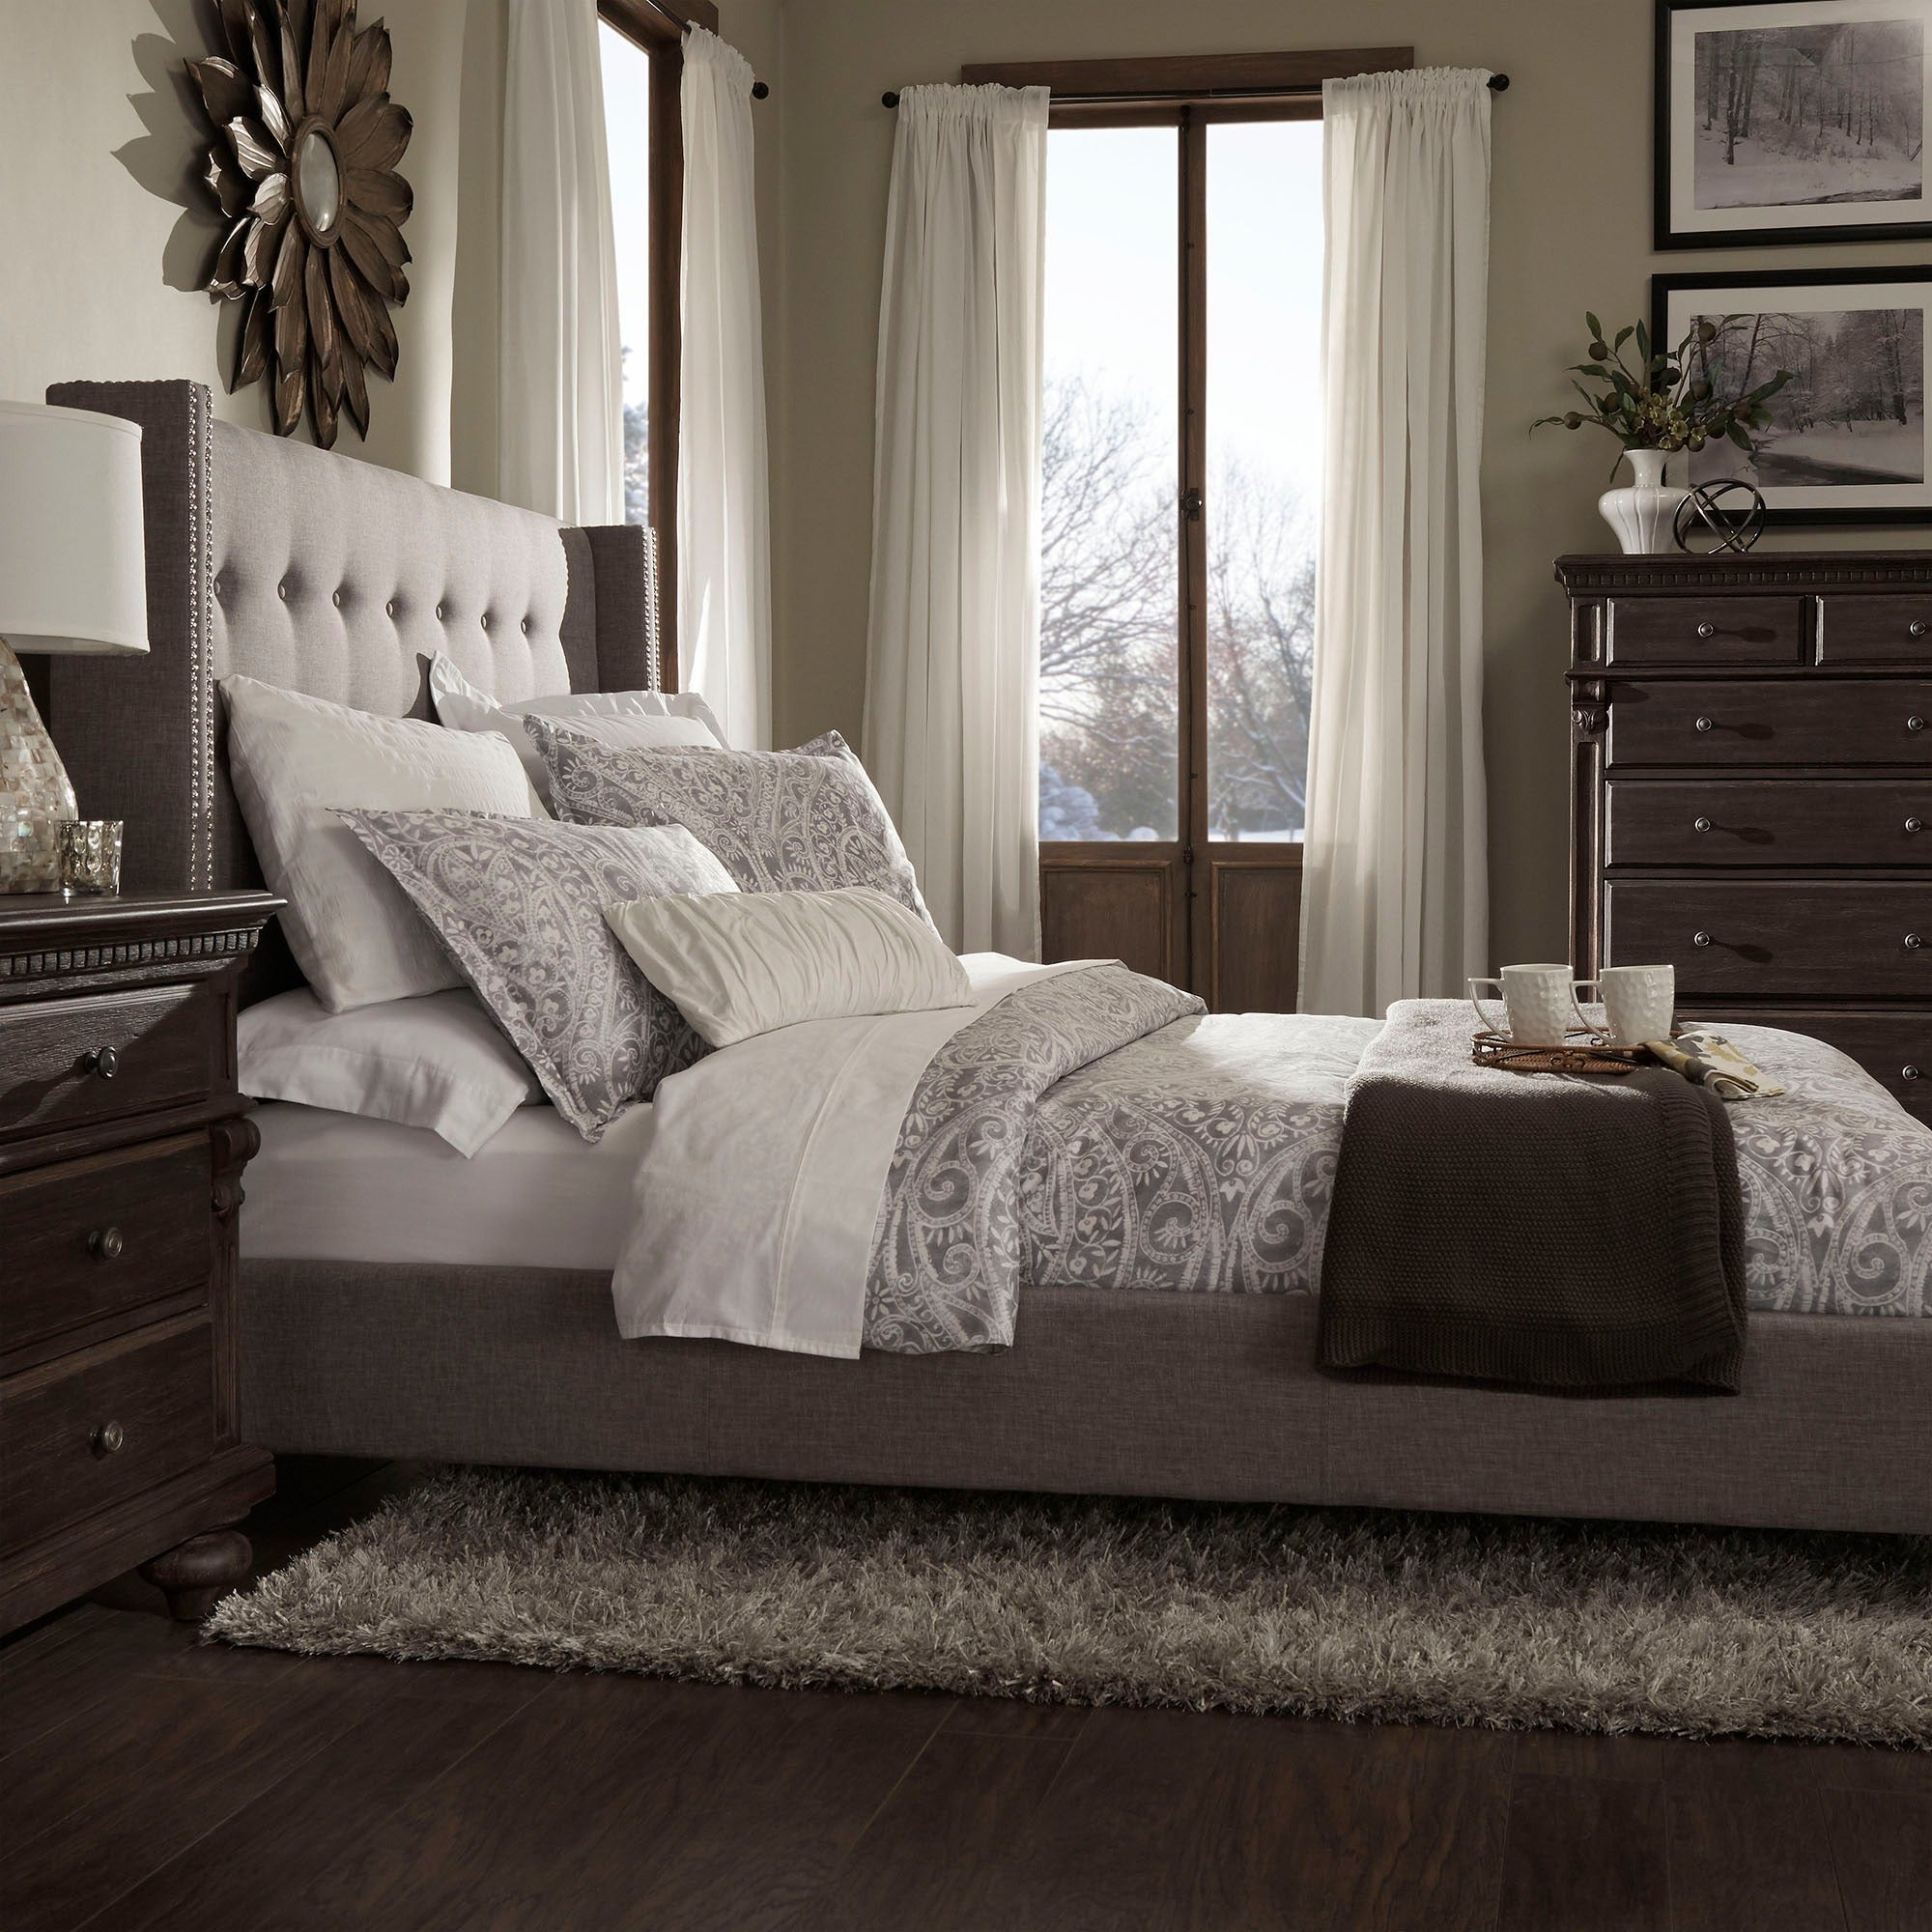 Marion Nailhead Wingback Tufted Upholstered King Bed by iNSPIRE Q Bold -  Free Shipping Today - Overstock.com - 16672219